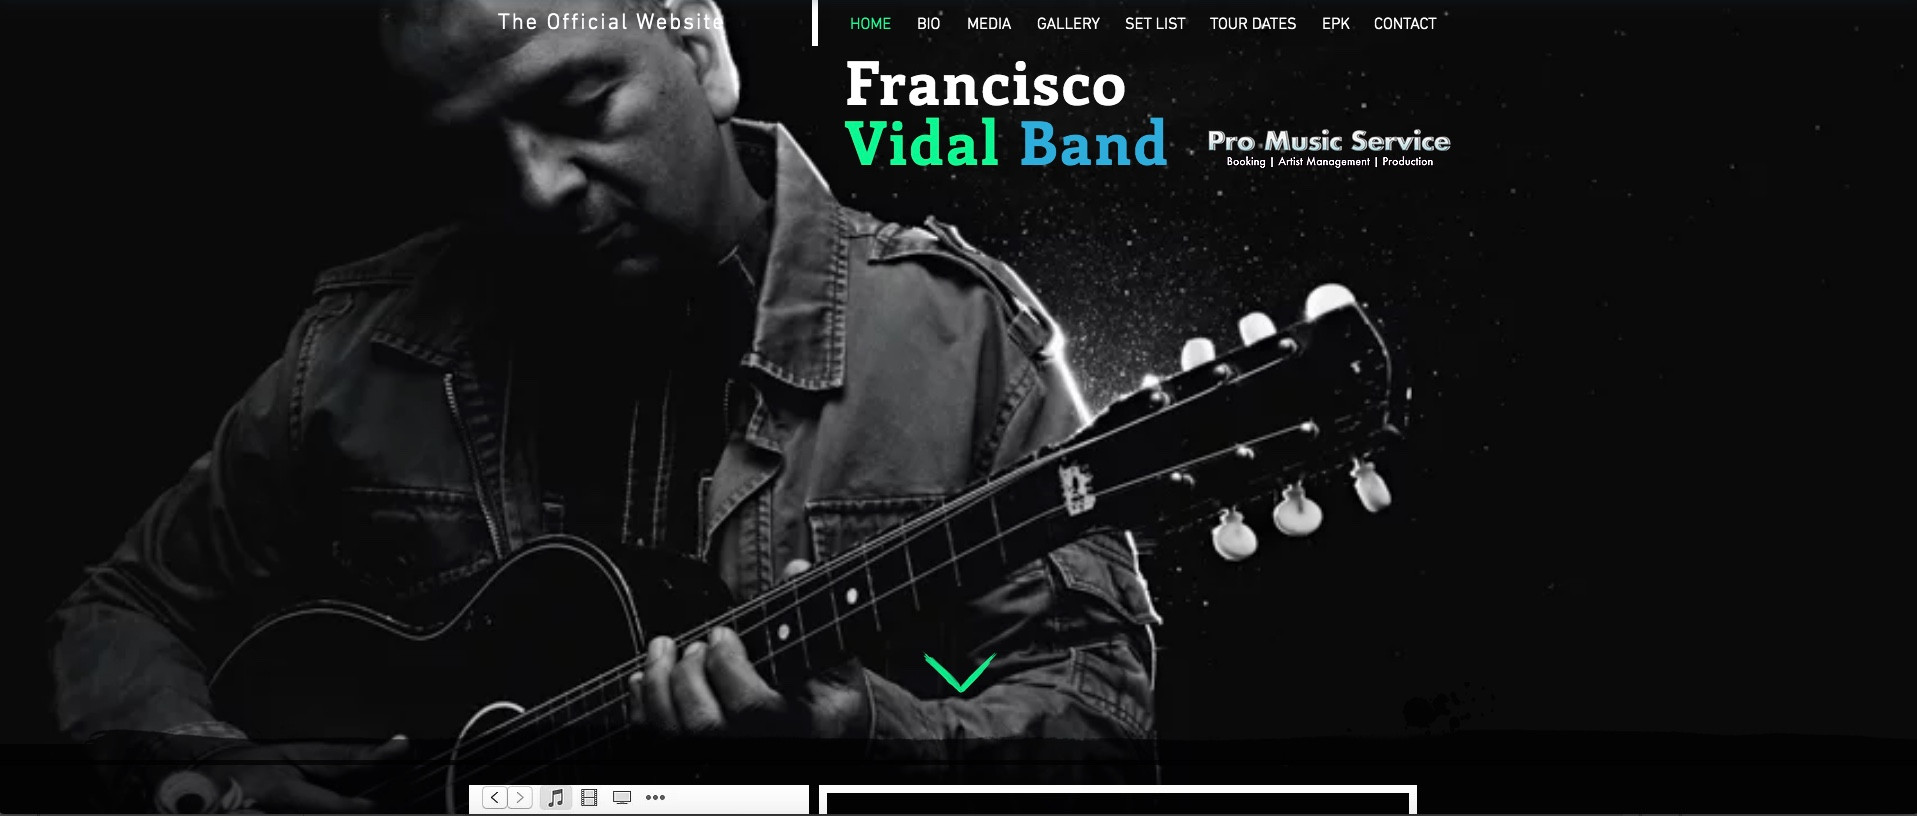 Francisco Vidal Band